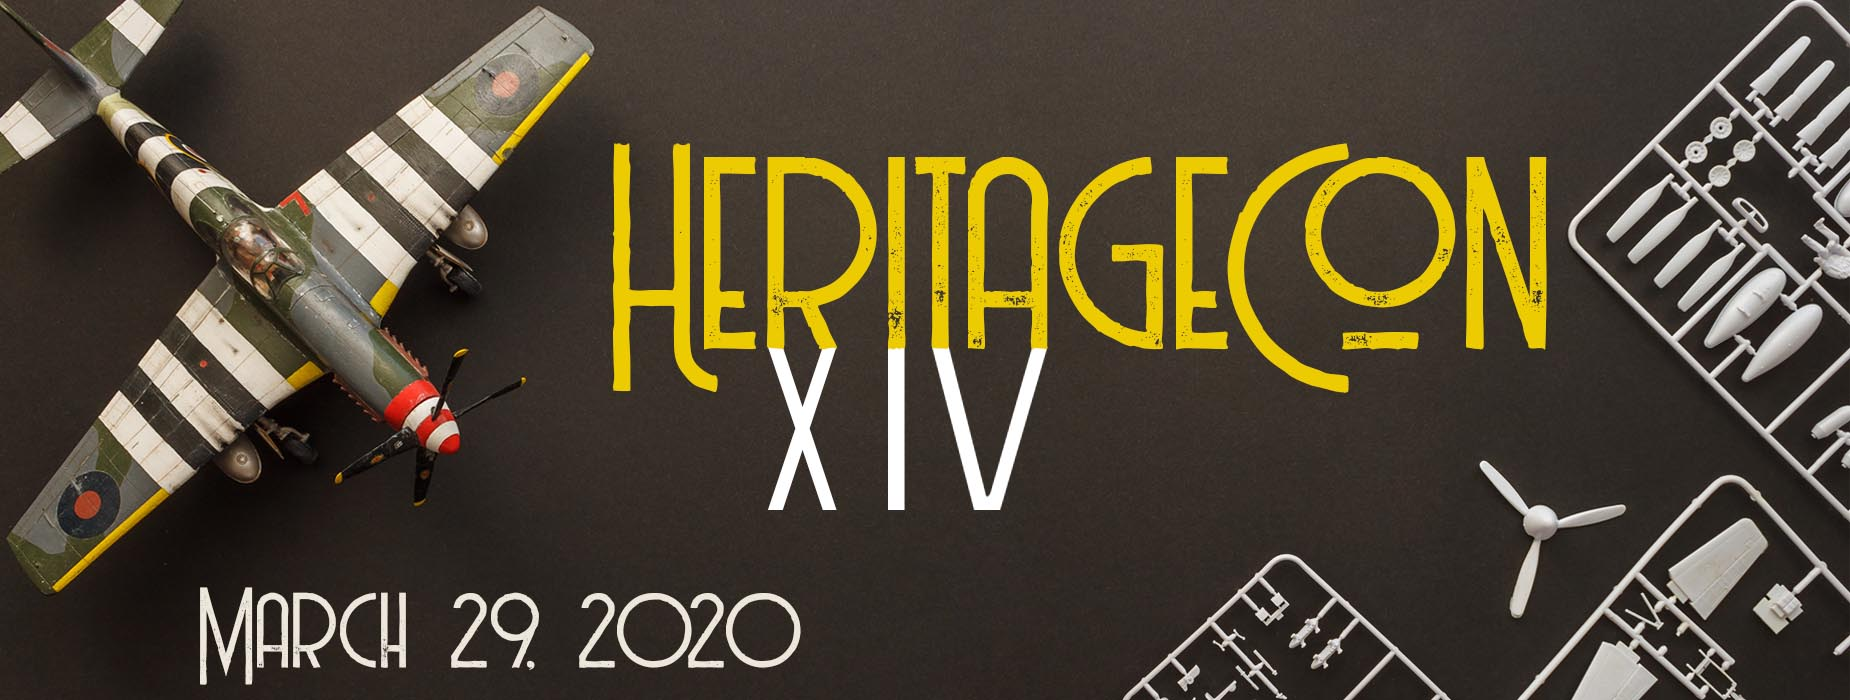 Banner Image for the HeritageCon XIV event